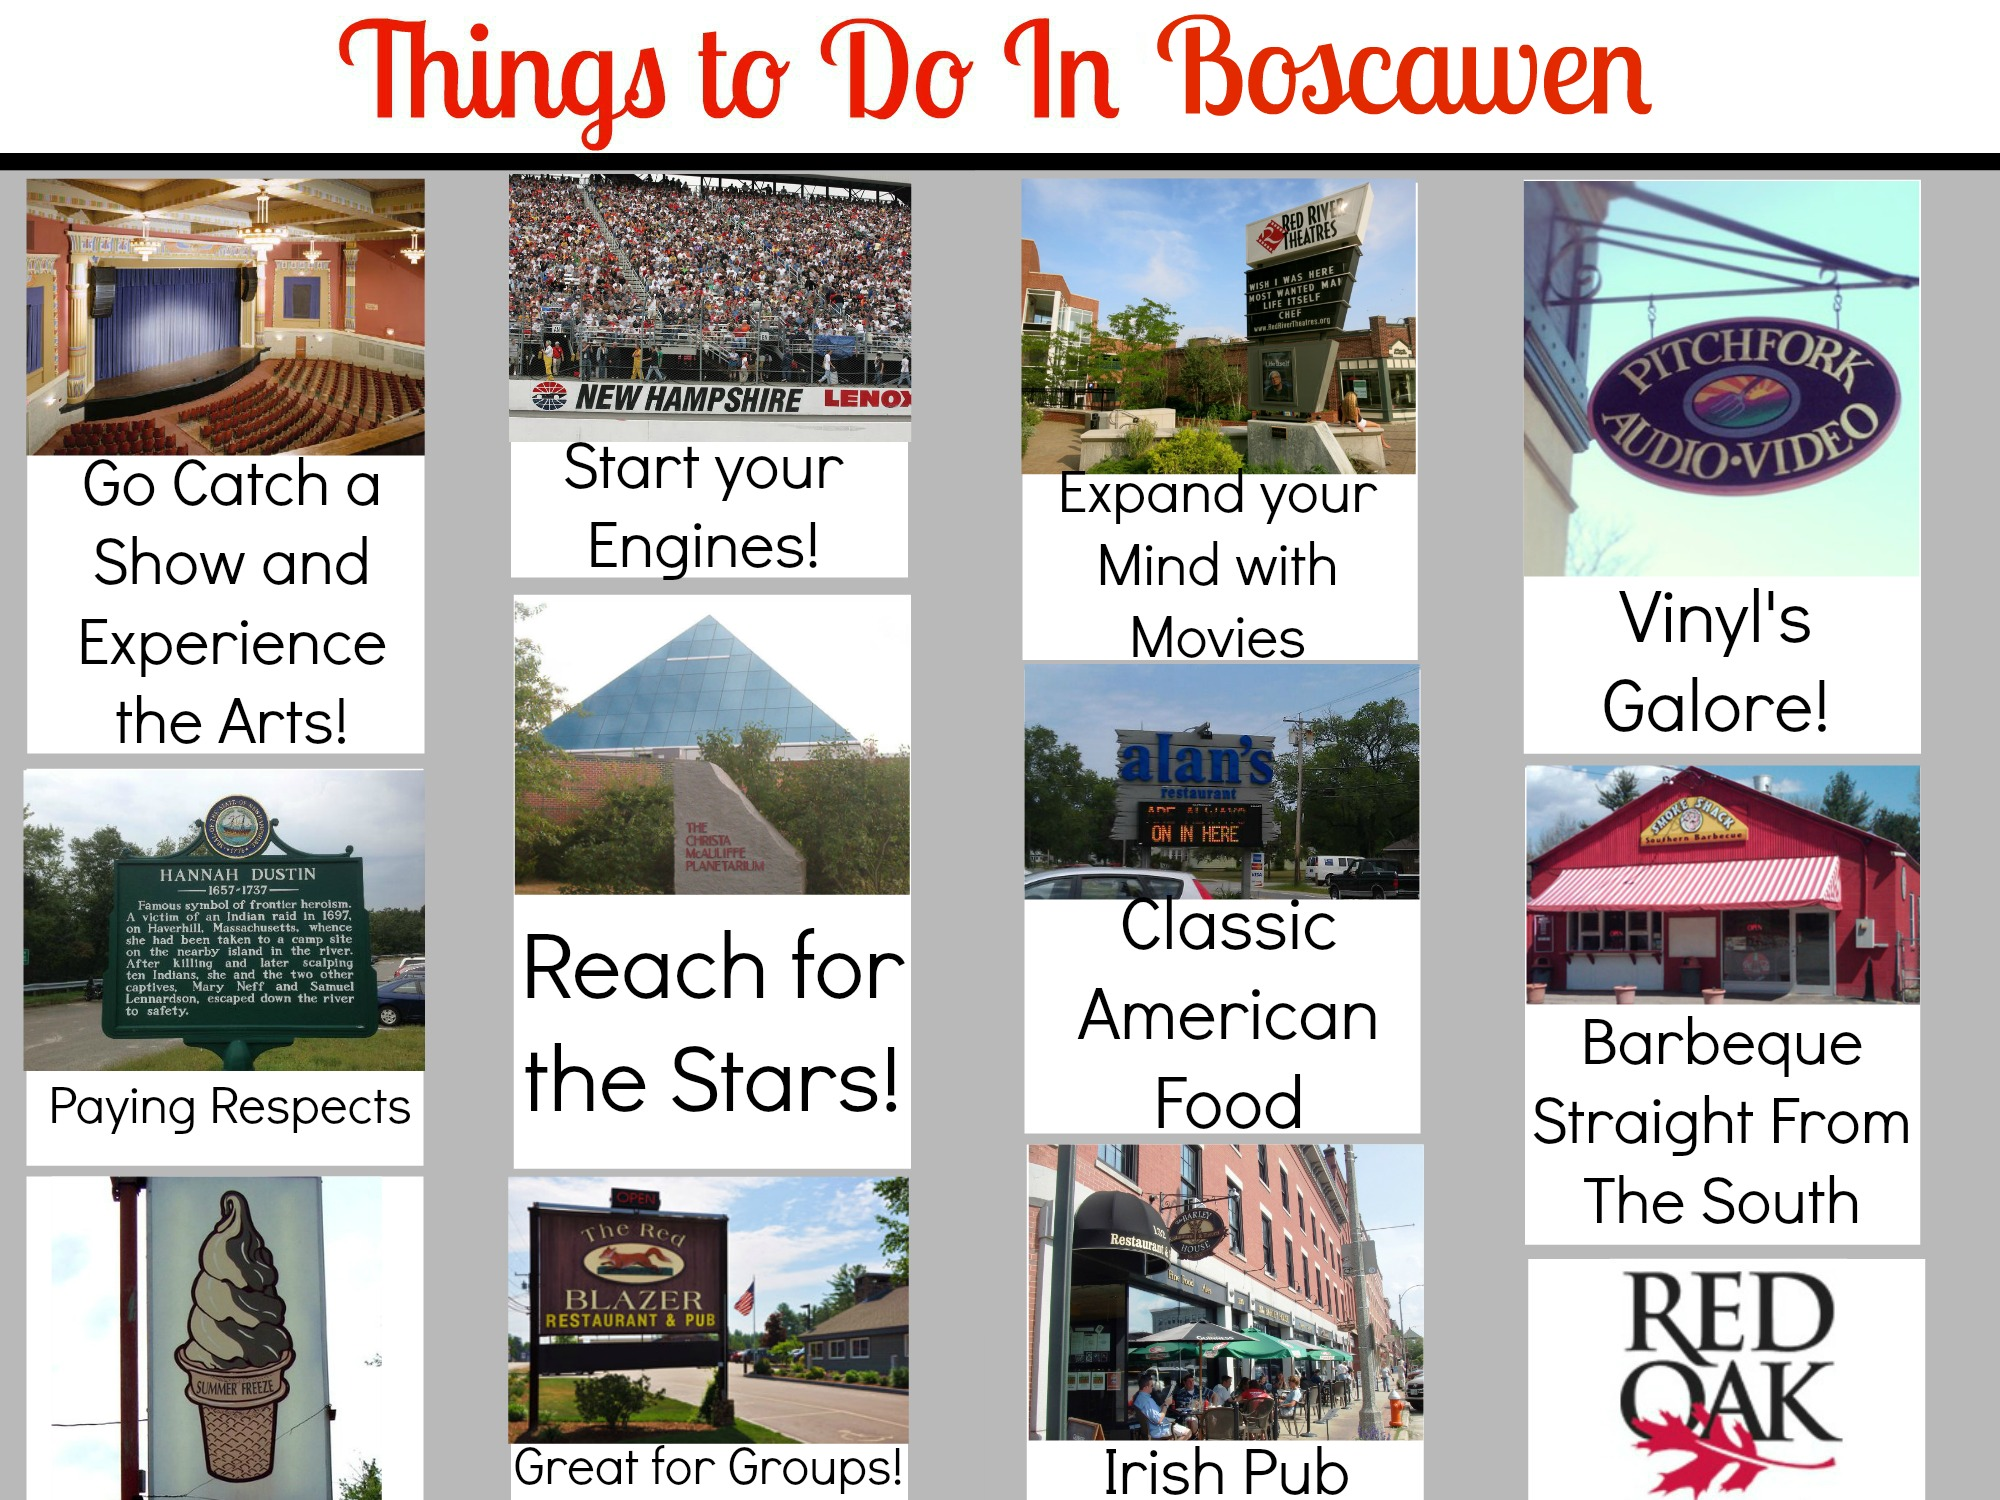 Things to do in Boscawen and Concord New Hampshire